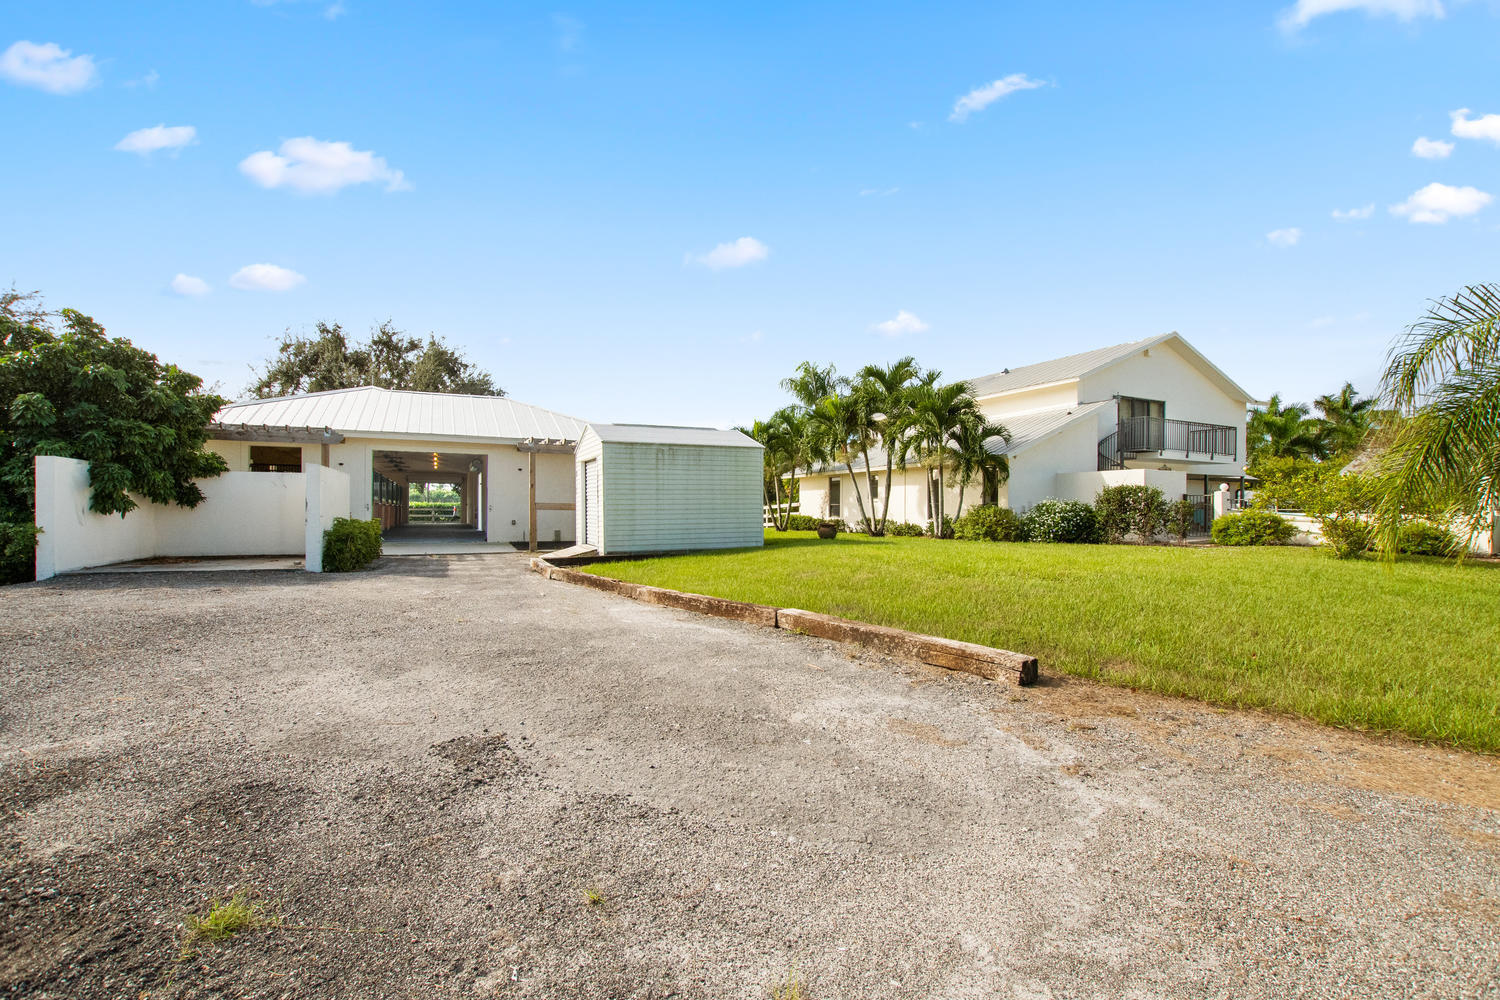 14965 Oatland Court, Wellington, Florida 33414, 2 Bedrooms Bedrooms, ,2 BathroomsBathrooms,Single Family,For Rent,Paddock Park 2,Oatland,1,RX-10513428